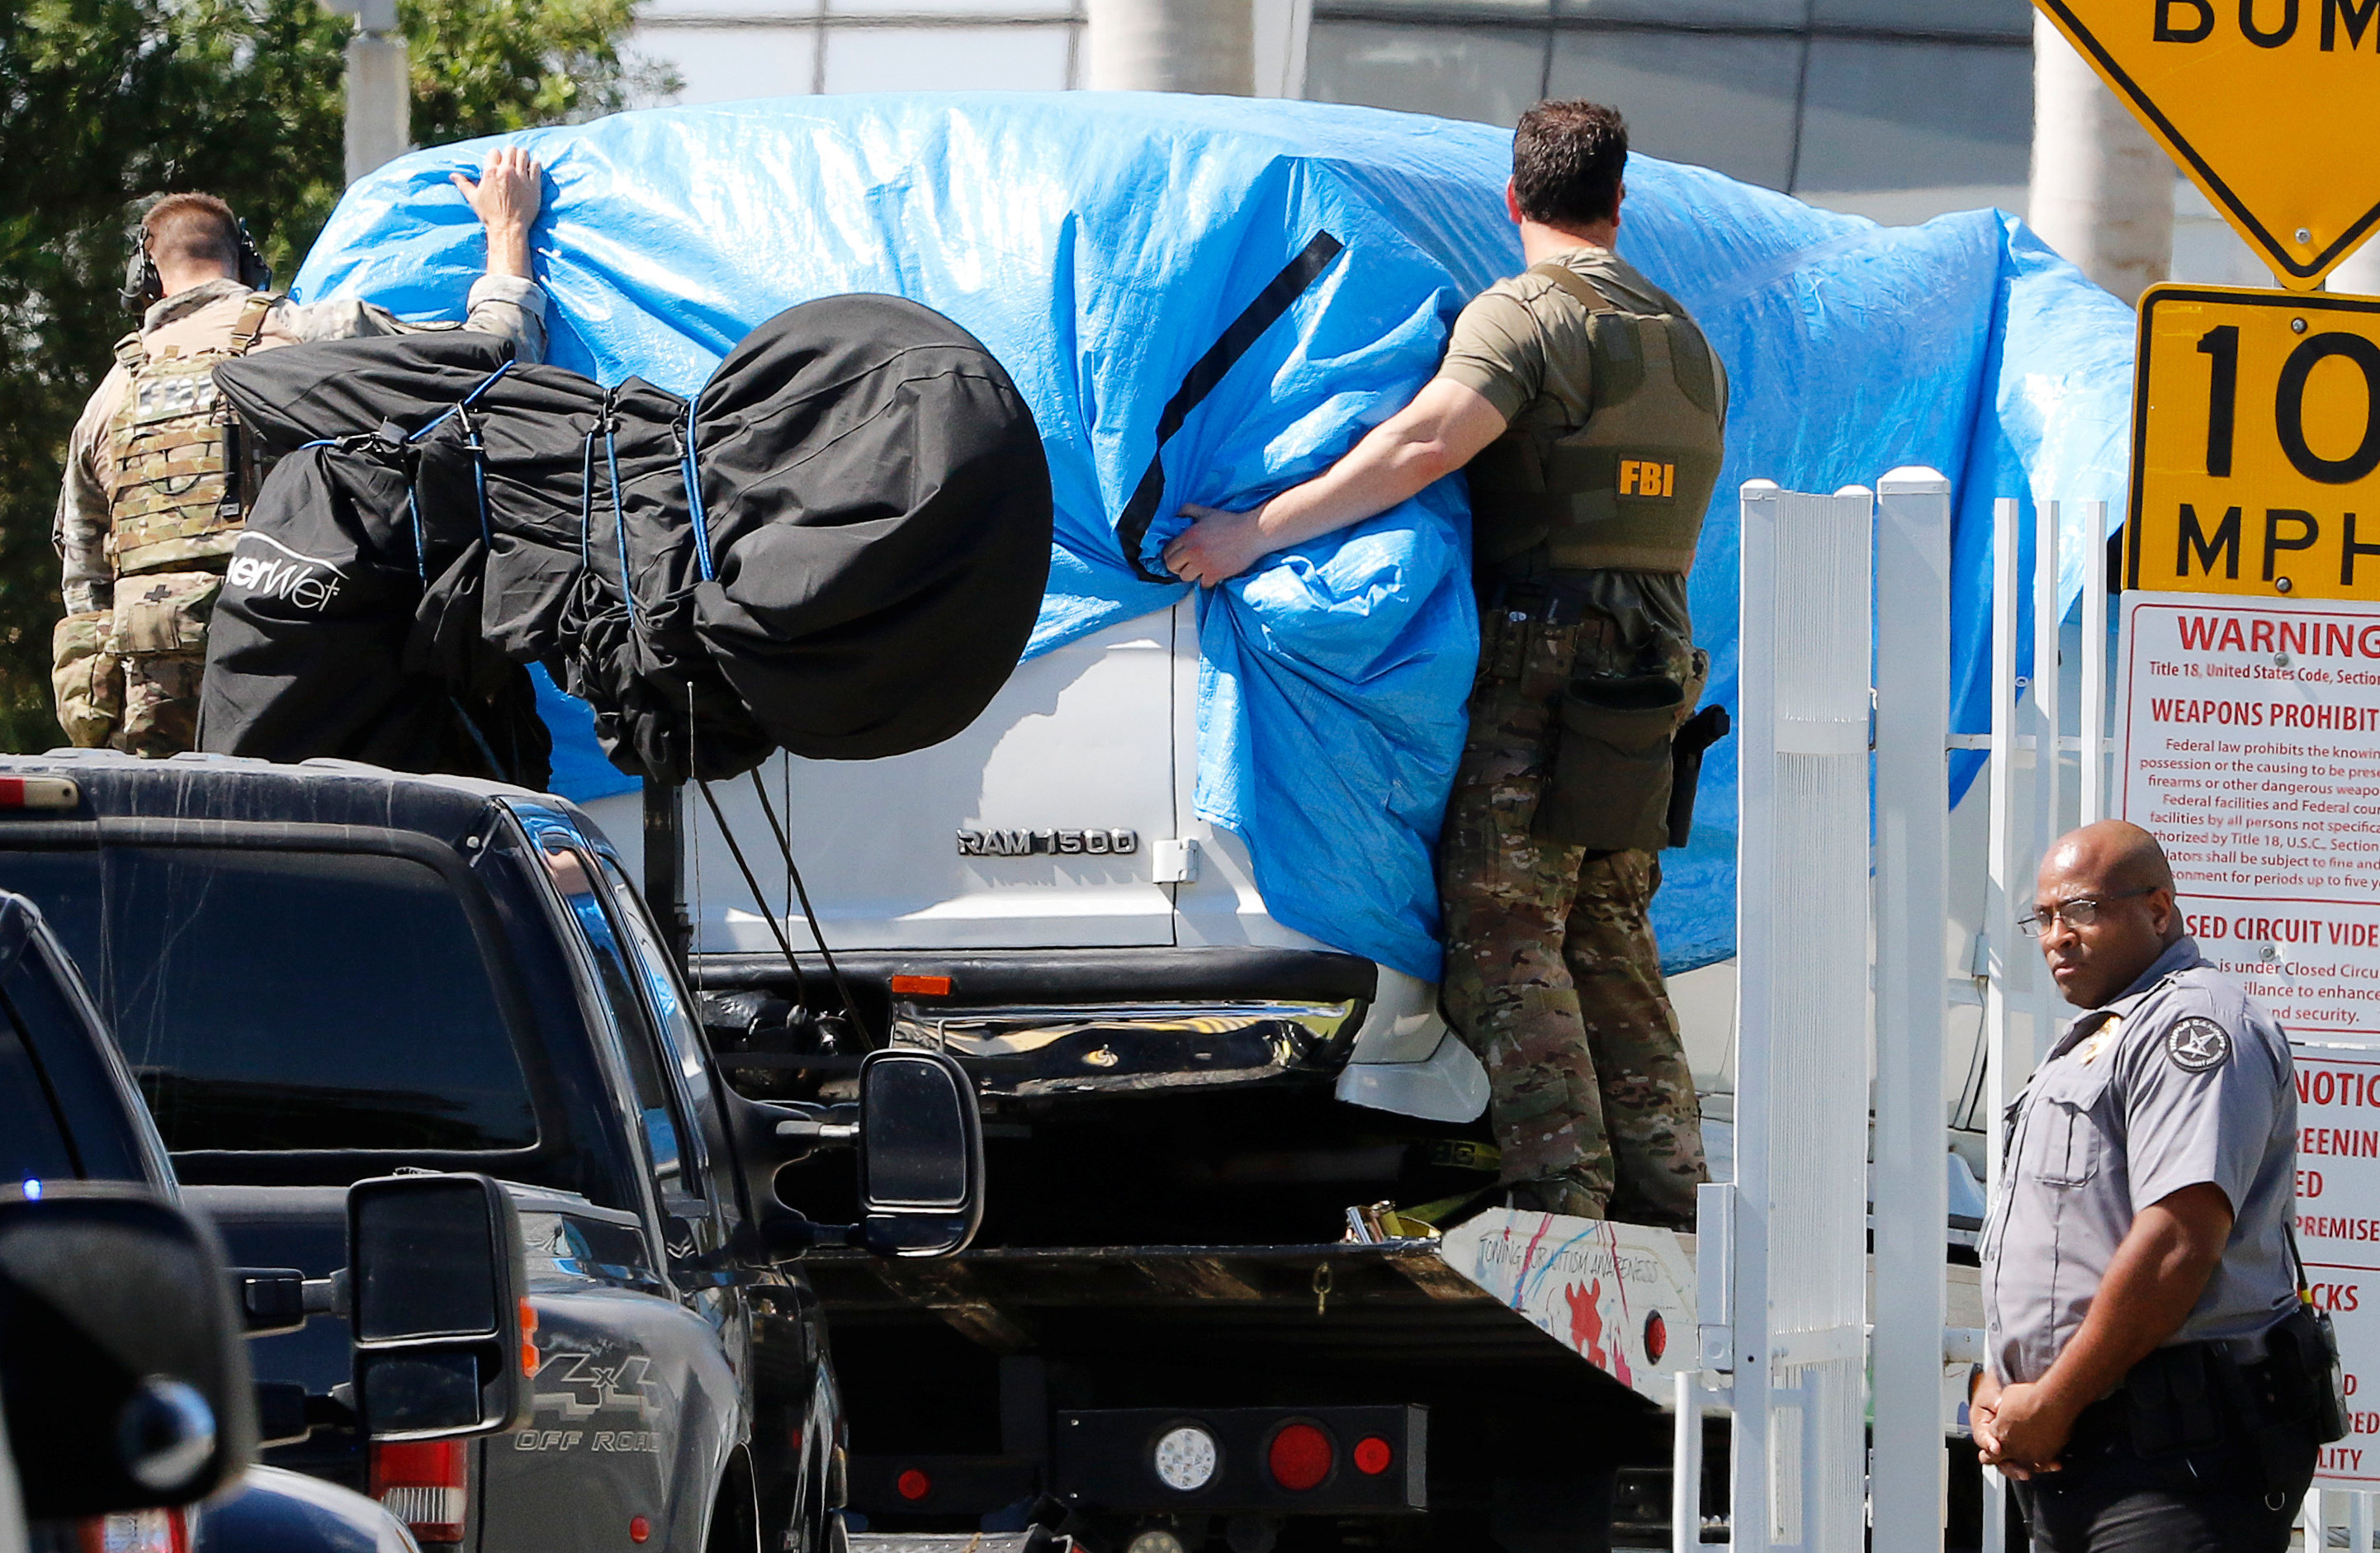 A white van seized during an investigation into a series of parcel bombs is towed into FBI headquarters in Miramar, Florida, October 26, 2018. REUTERS/Joe Skipper